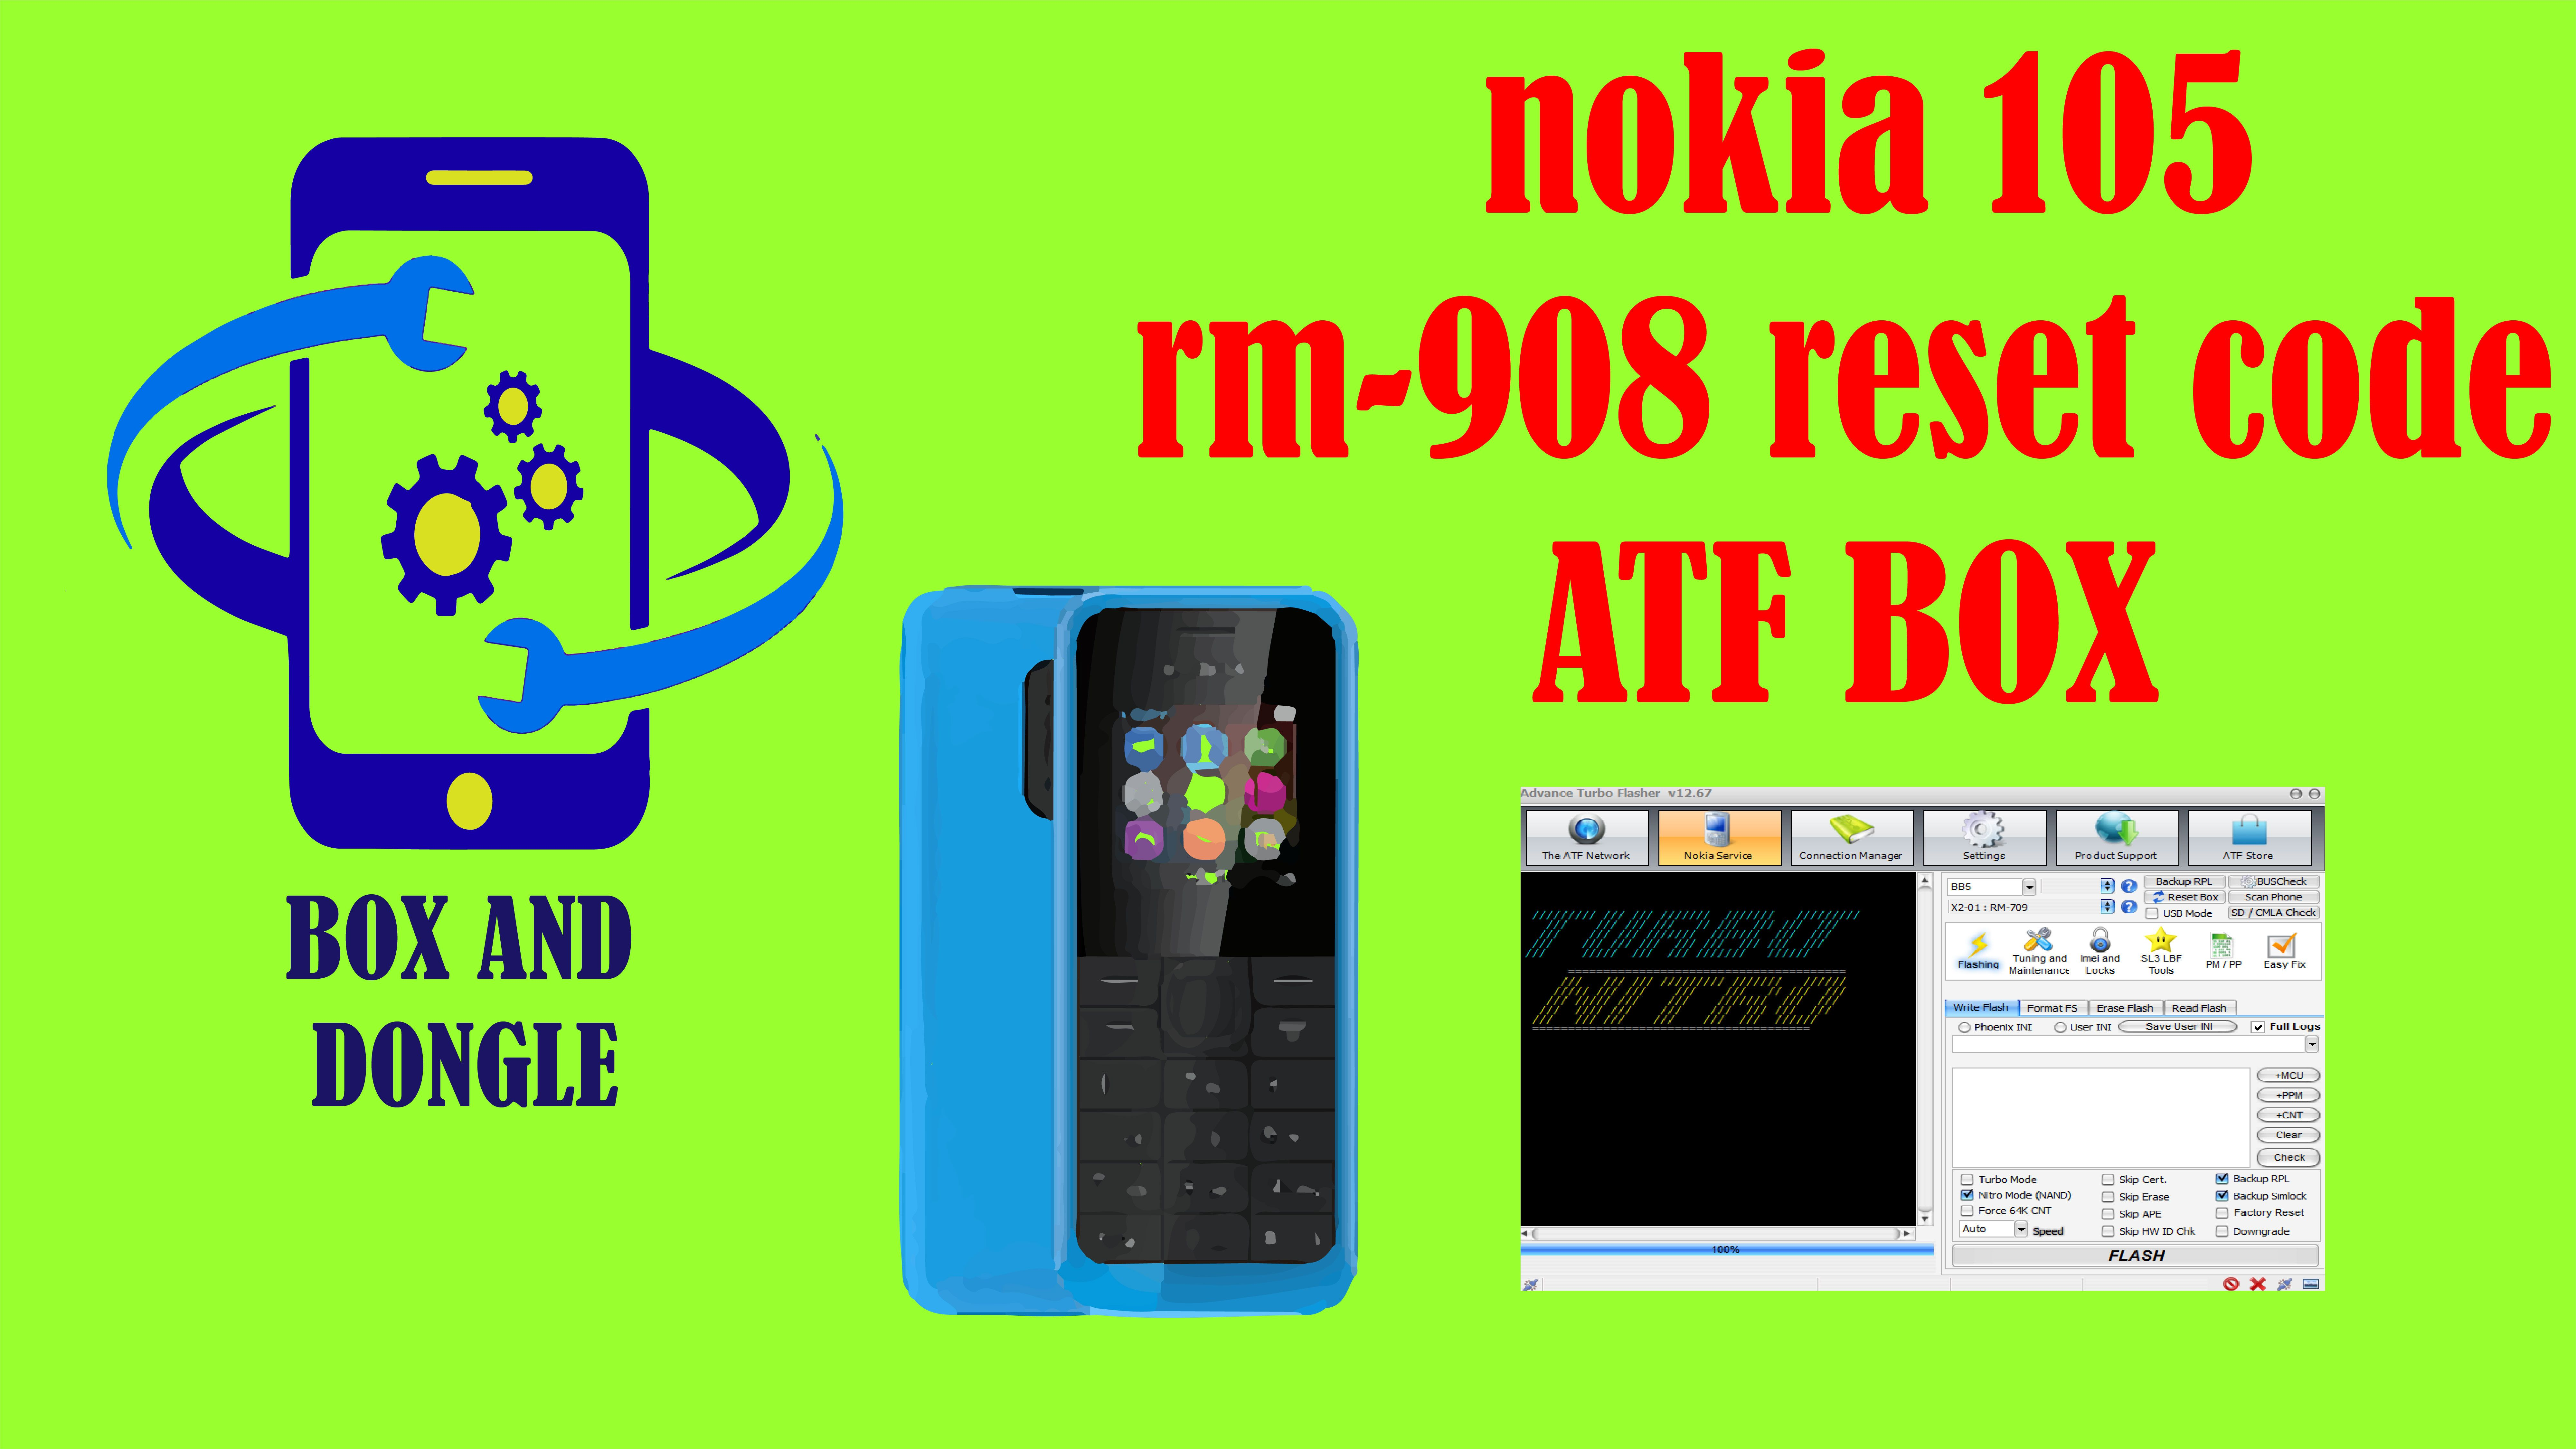 nokia 105 rm908 reset code by ATF BOX